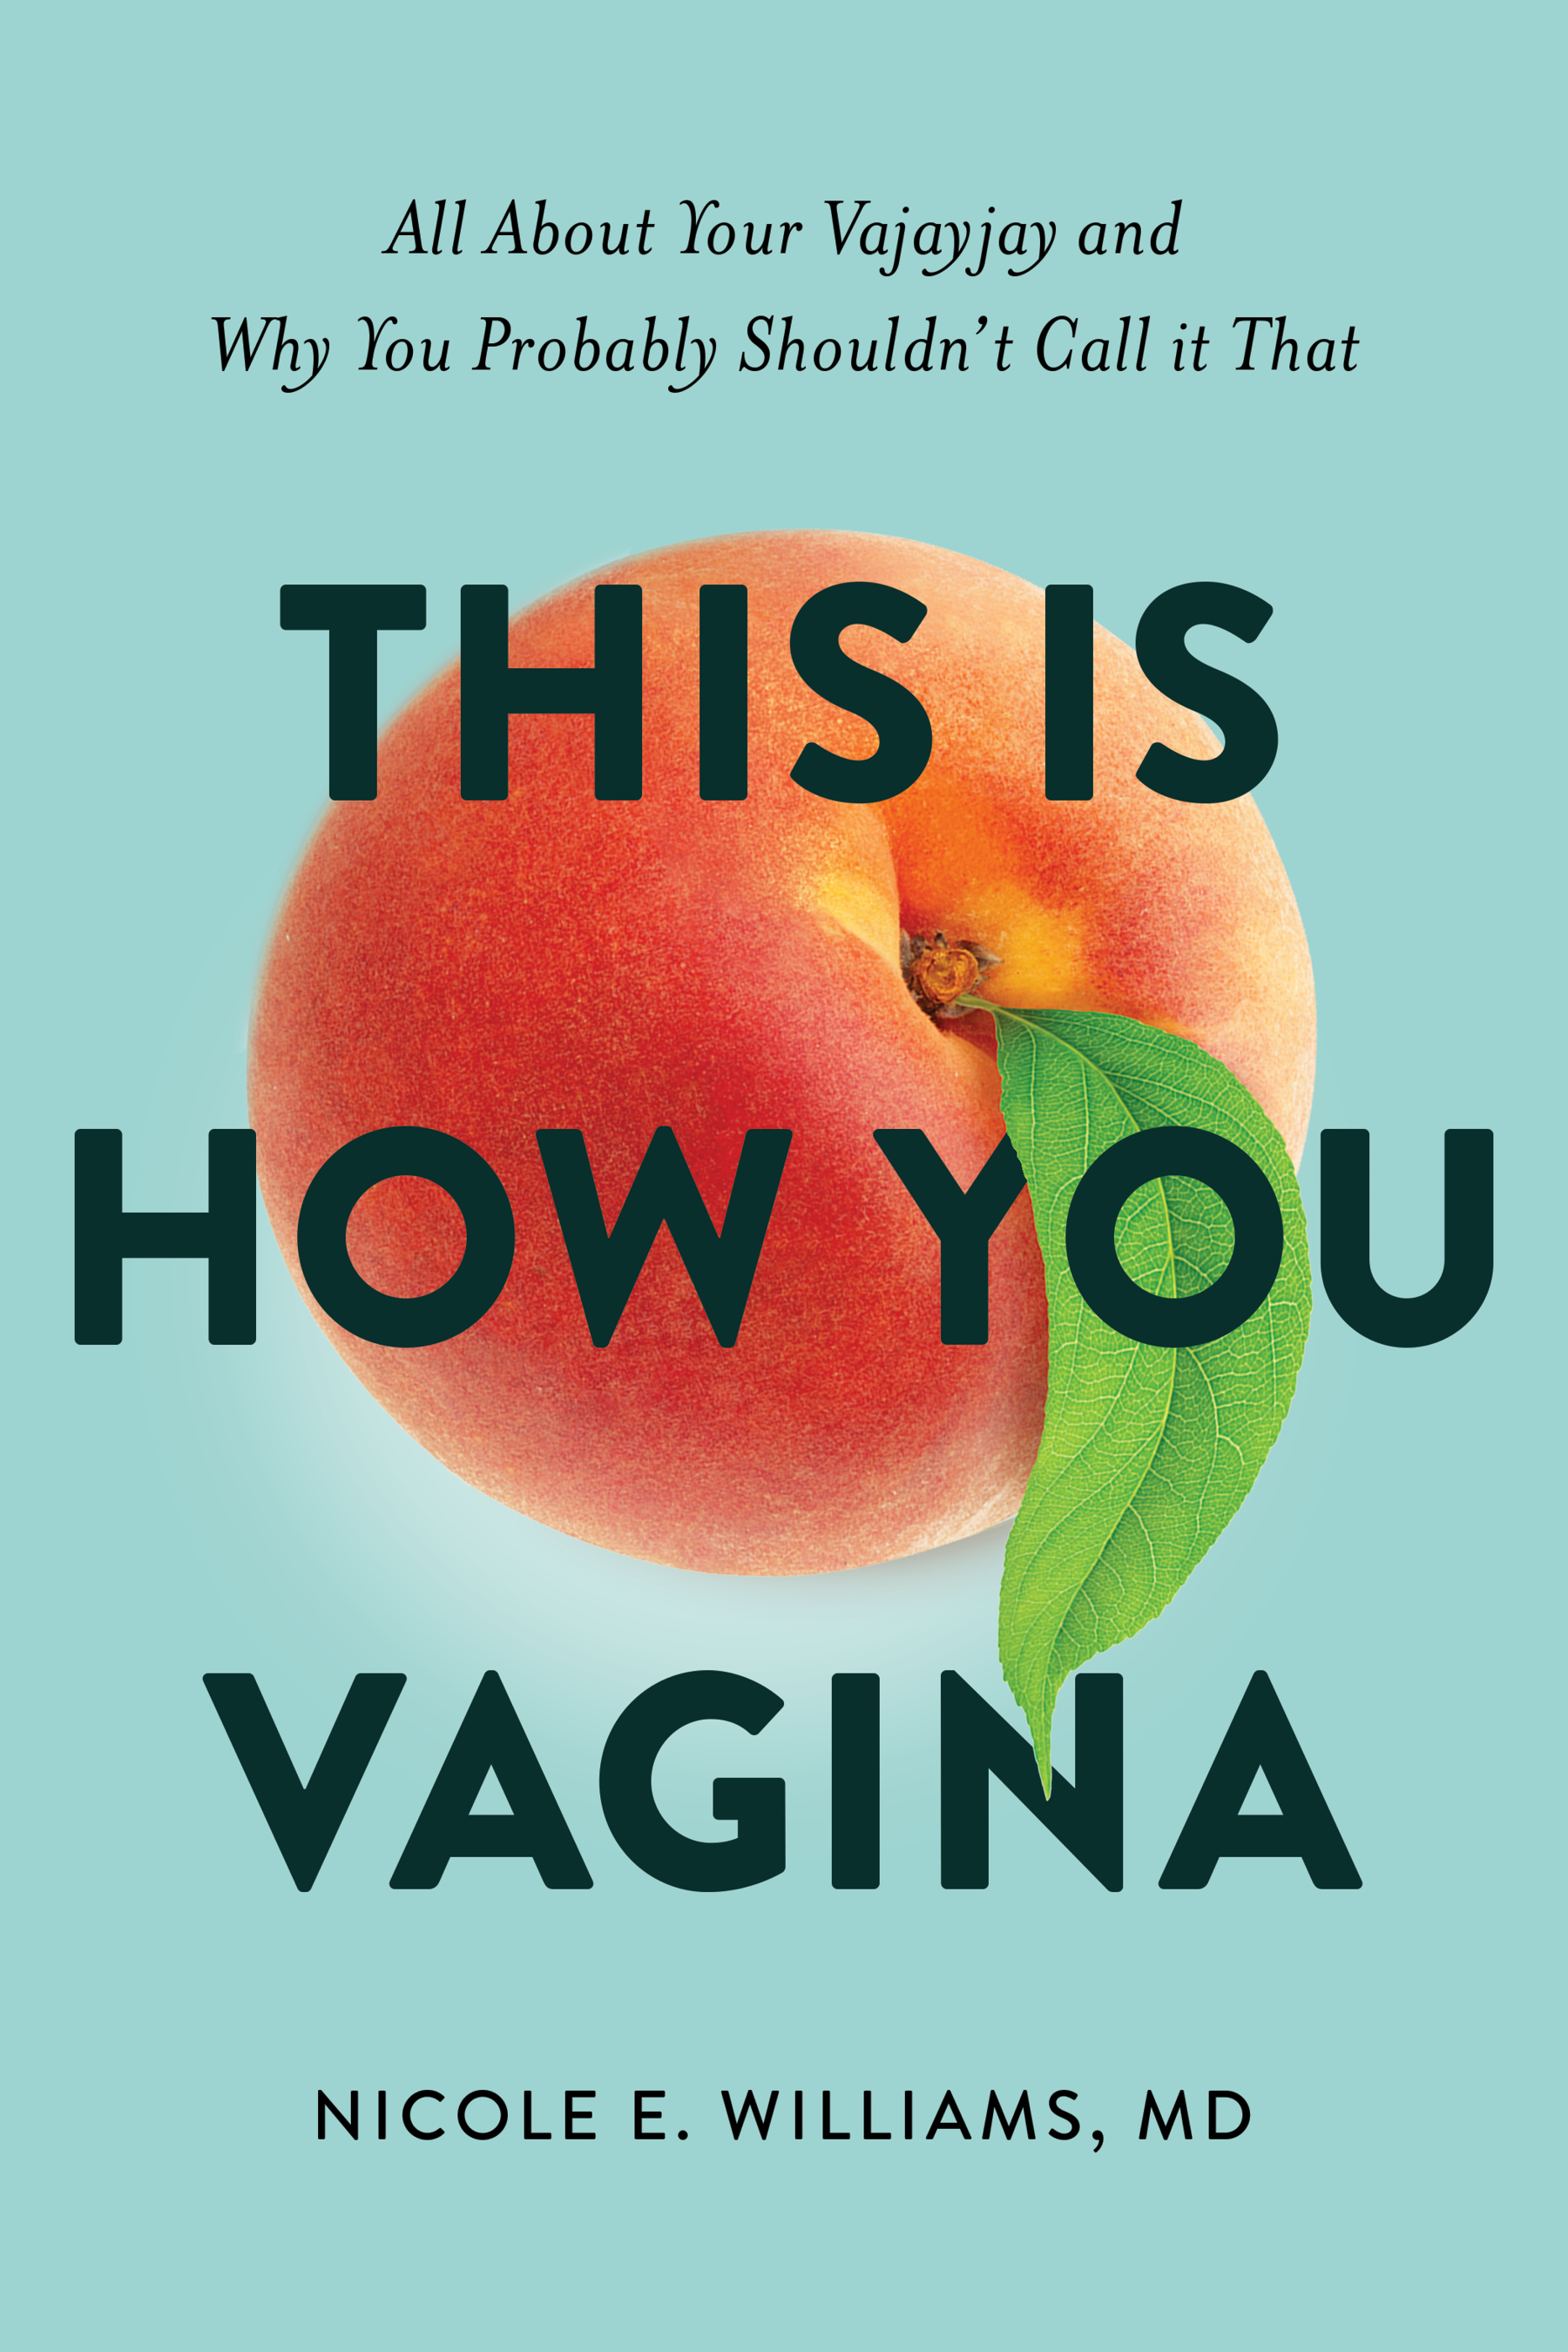 This is How You Vagina: All About Your Vajayjay and Why You Probably Shouldn't Call it That by Nicole E. Williams